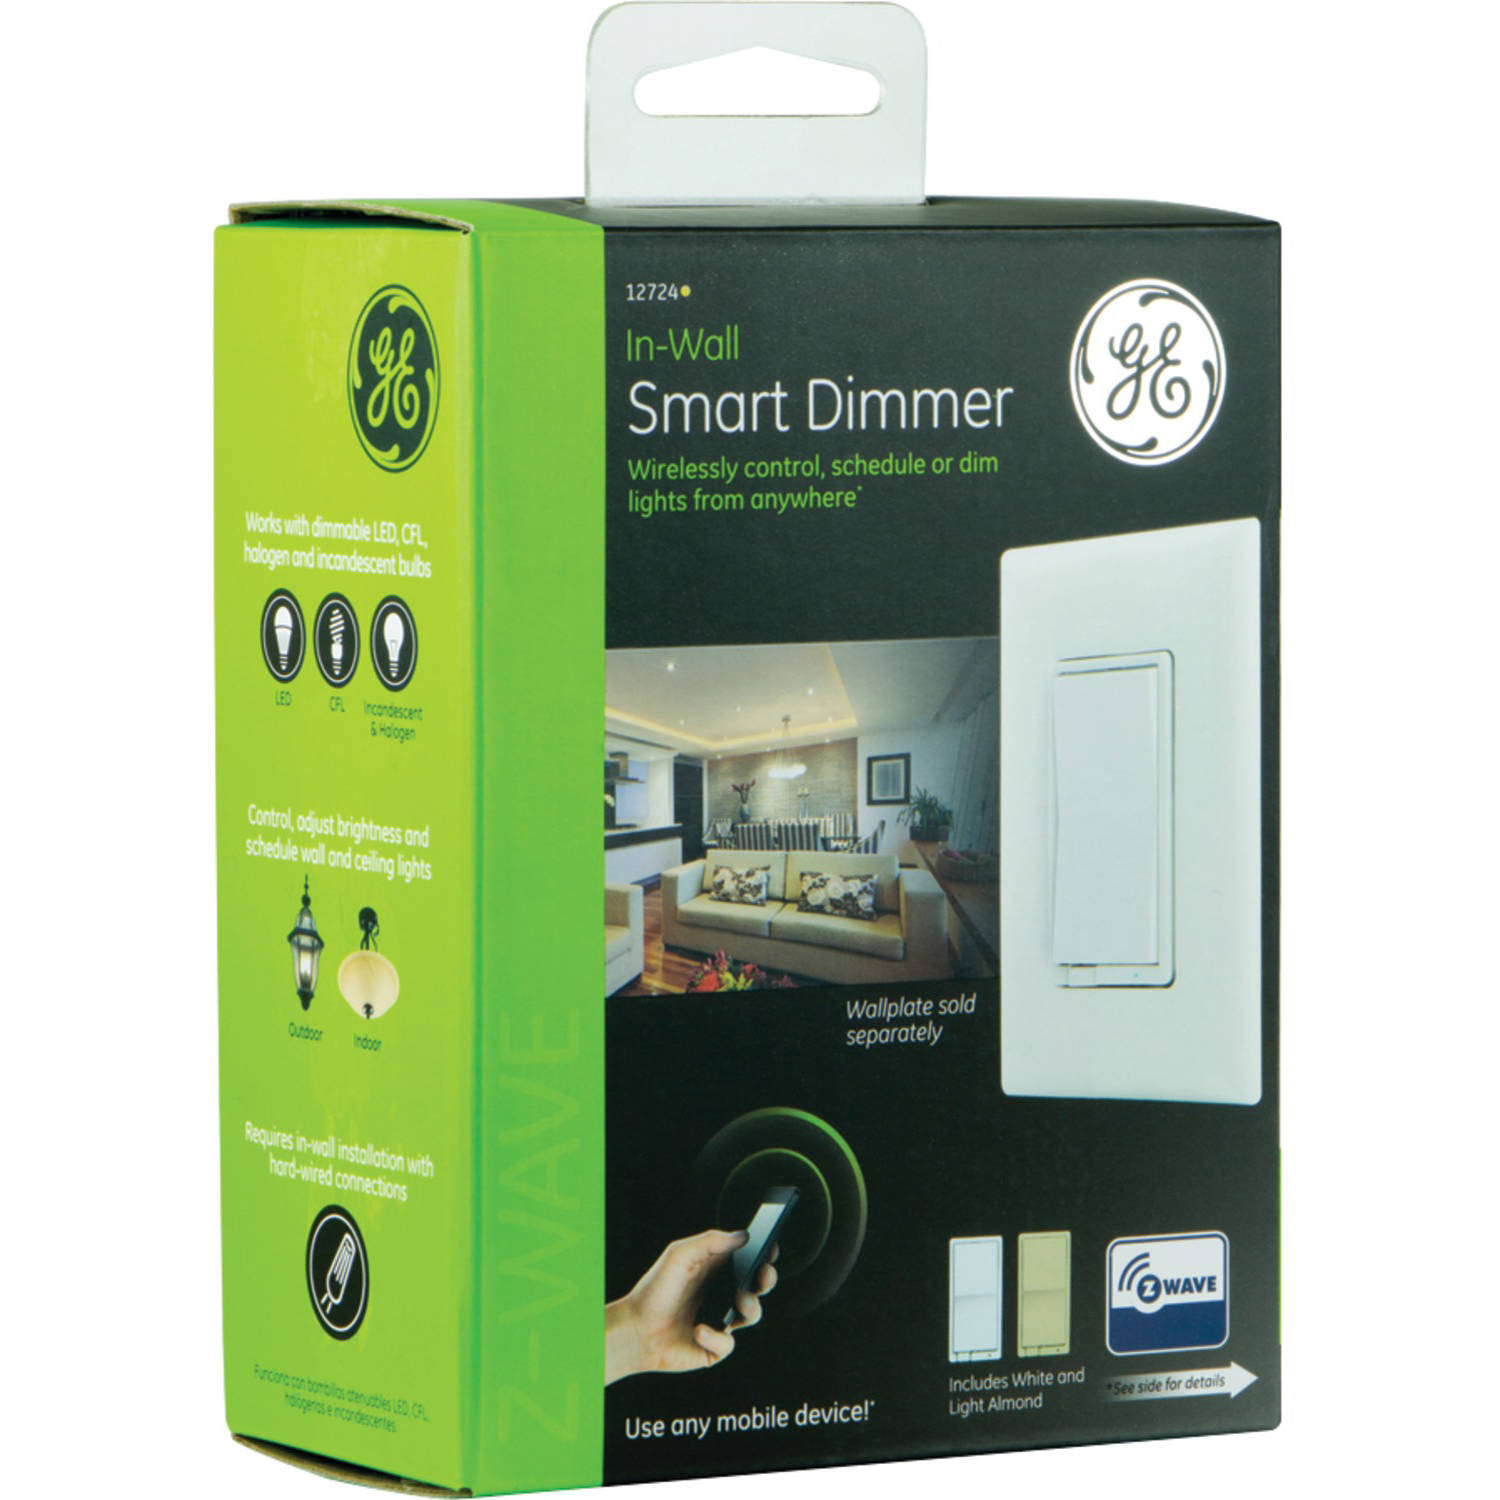 Ge 12724 In Wall Indoor Smart Dimmer Hub Required 3 Way Switch Buzzing